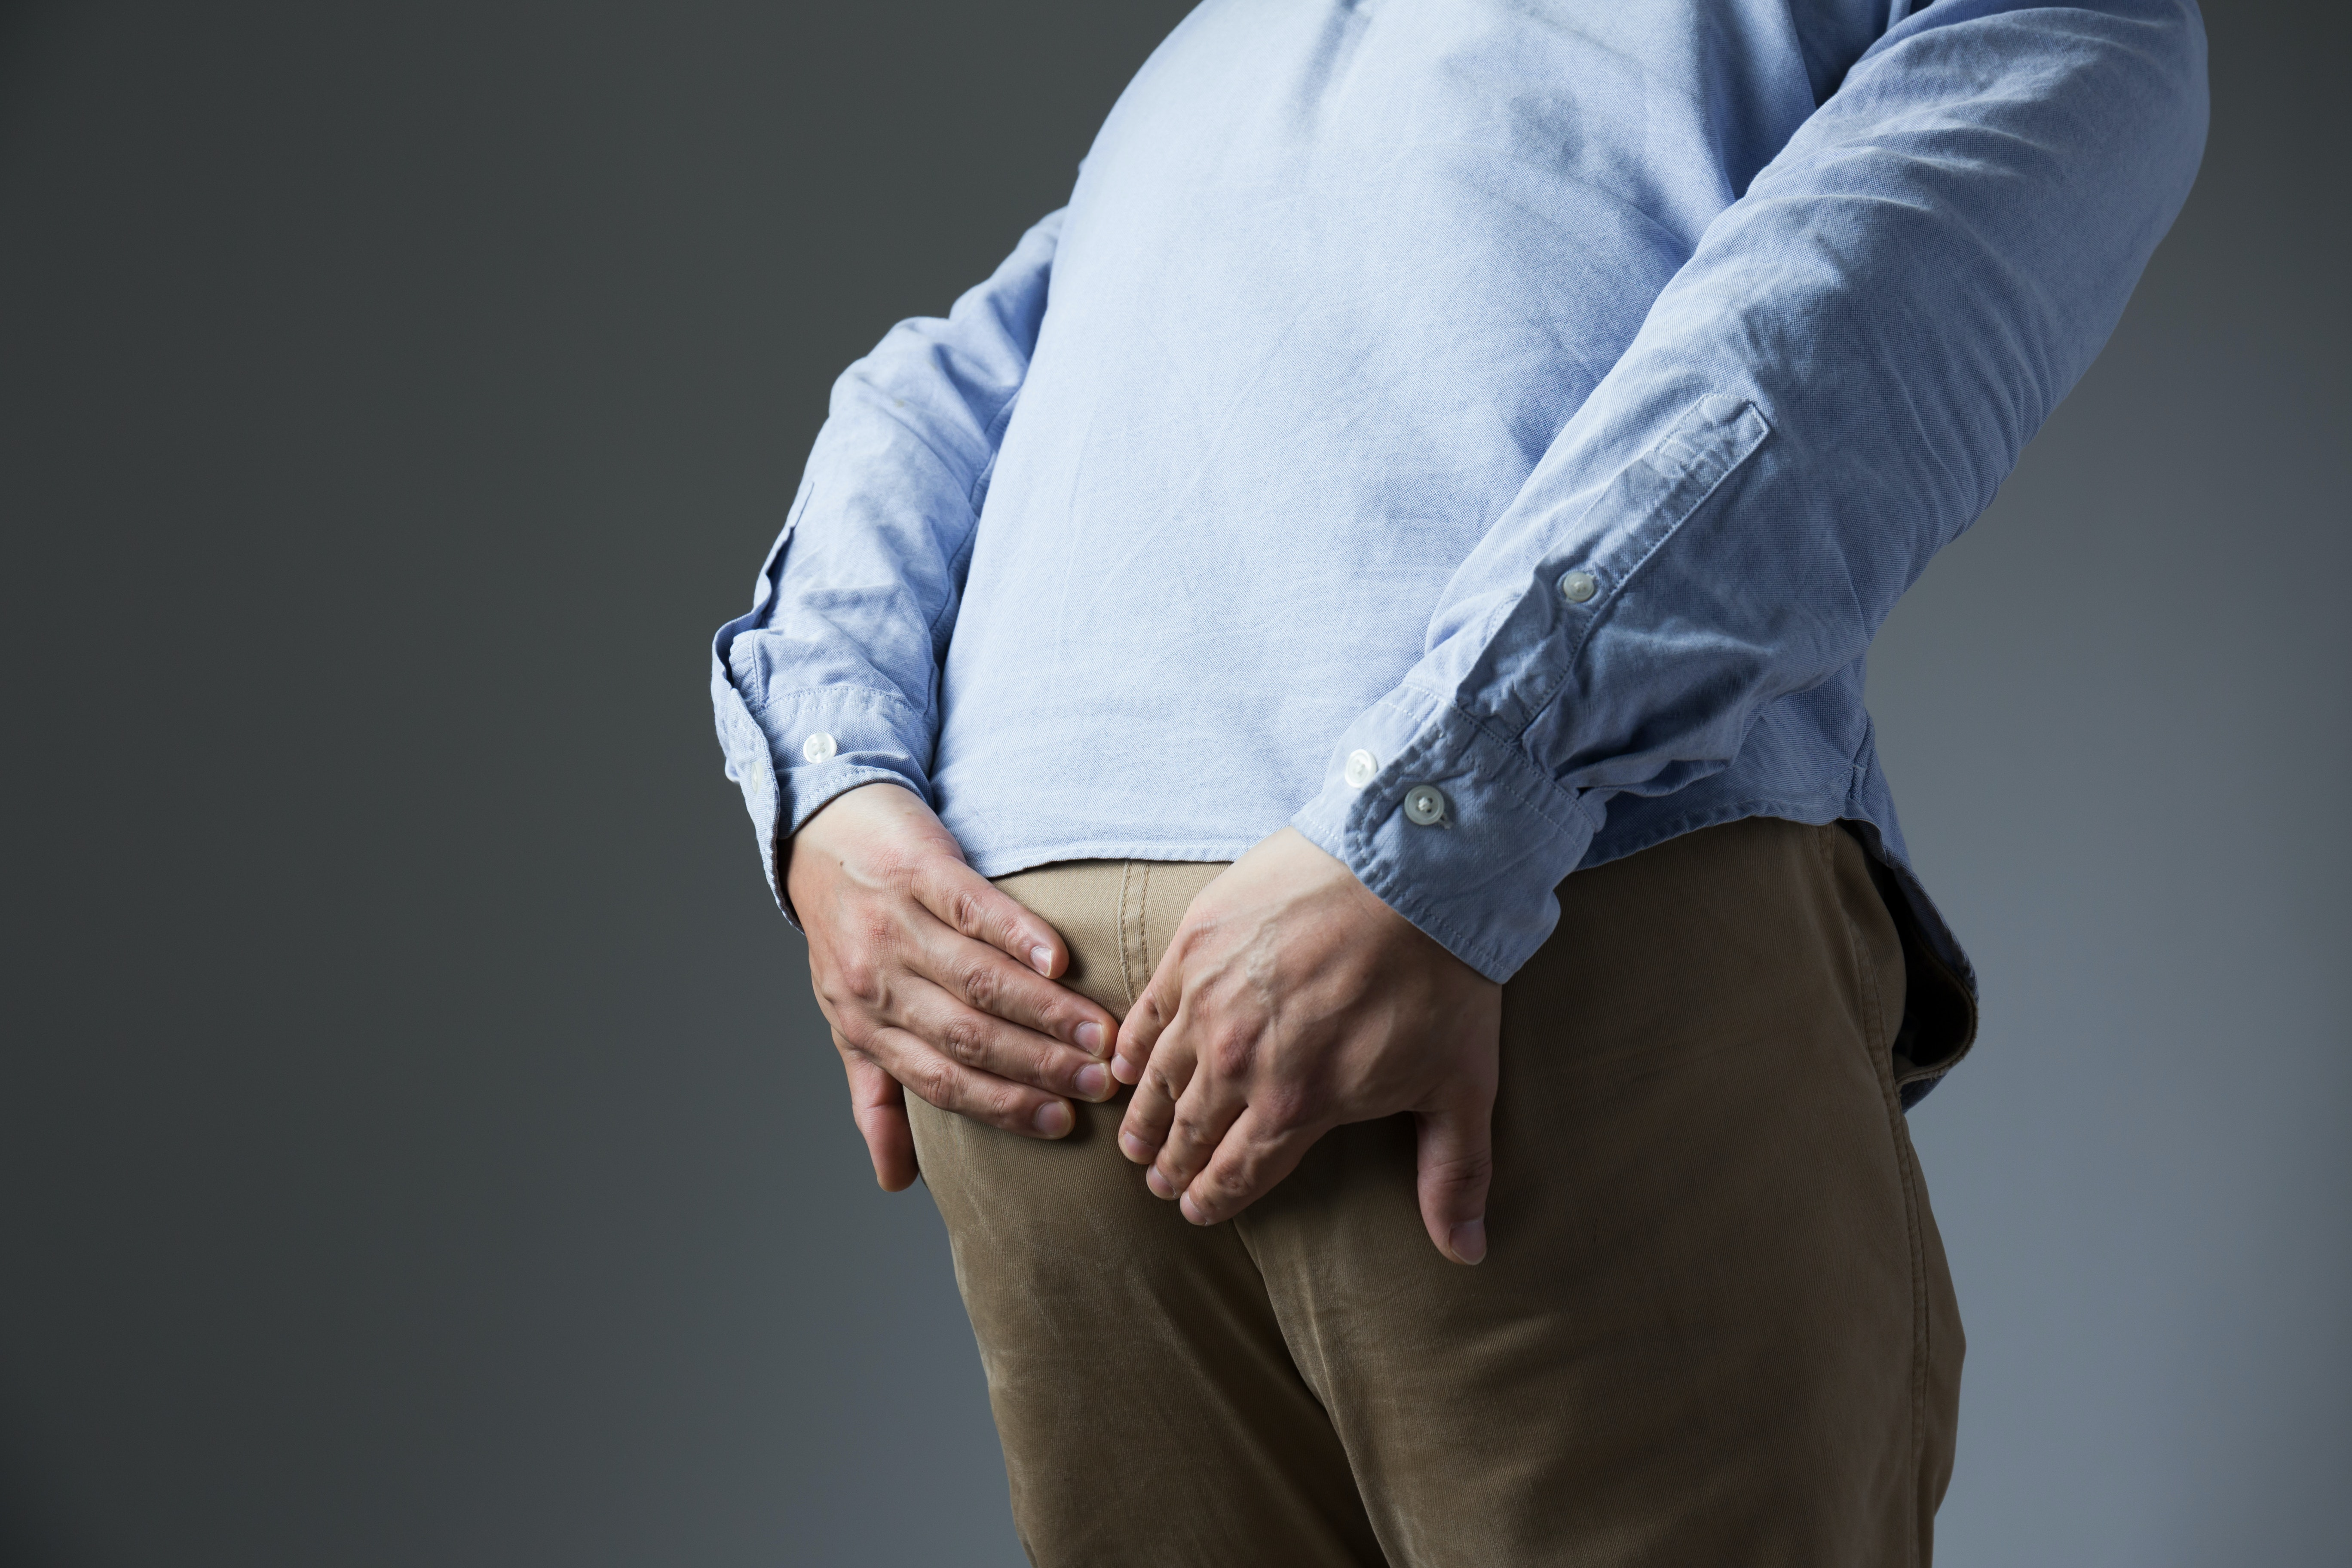 An image depicting a person suffering from tailbone pain symptoms